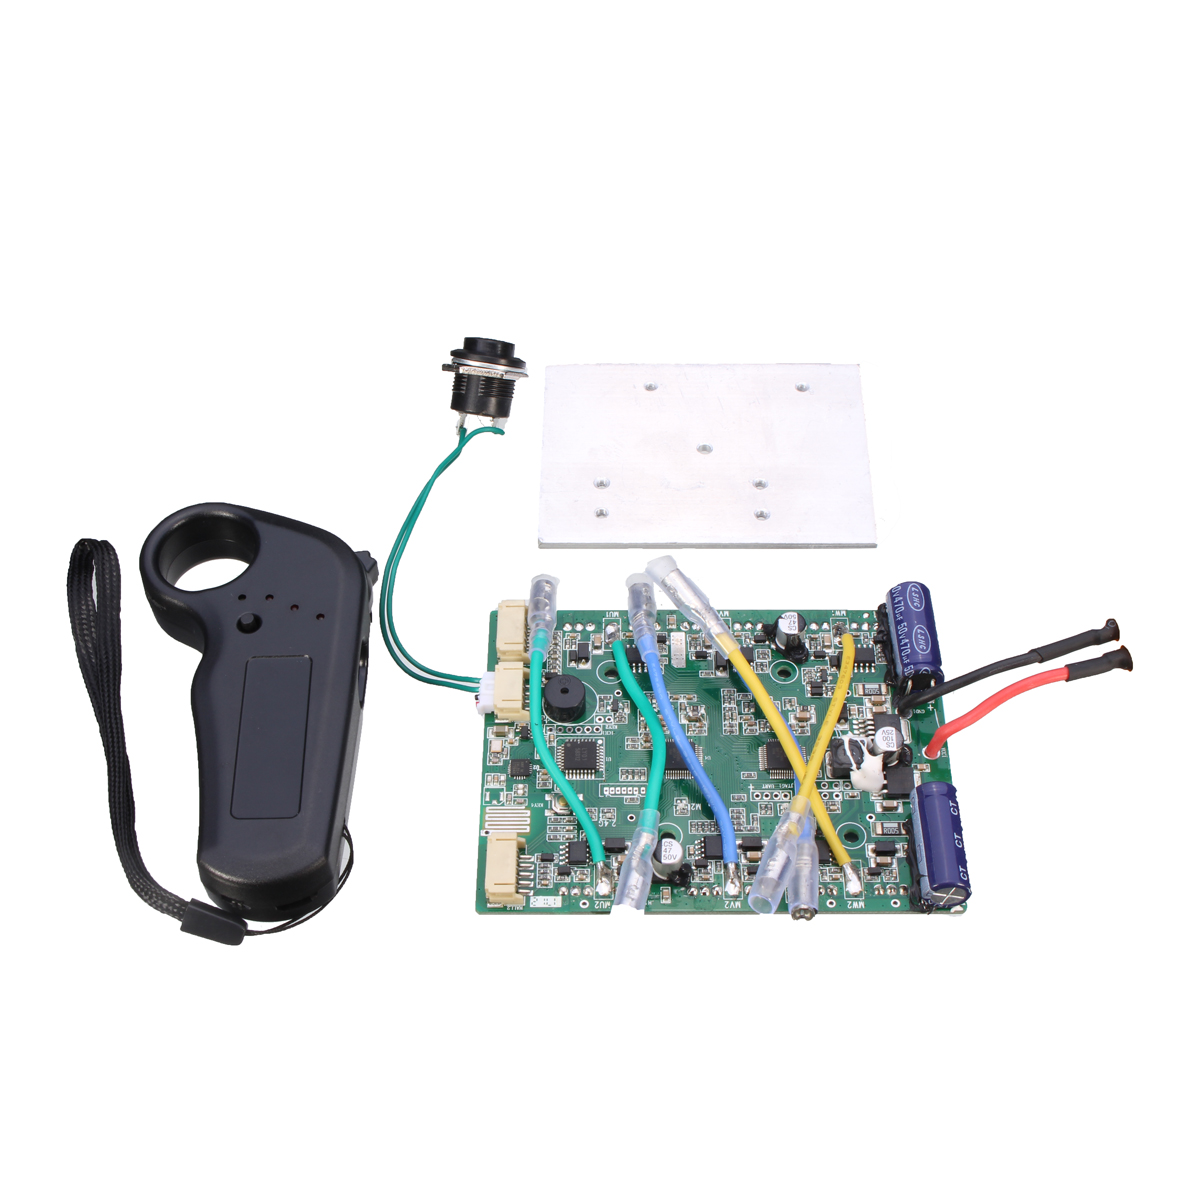 Dual Motors Electric Four-Wheel Skateboard Longboard Brushless Motor Control Module ESC+ Remote ControlDual Motors Electric Four-Wheel Skateboard Longboard Brushless Motor Control Module ESC+ Remote Control